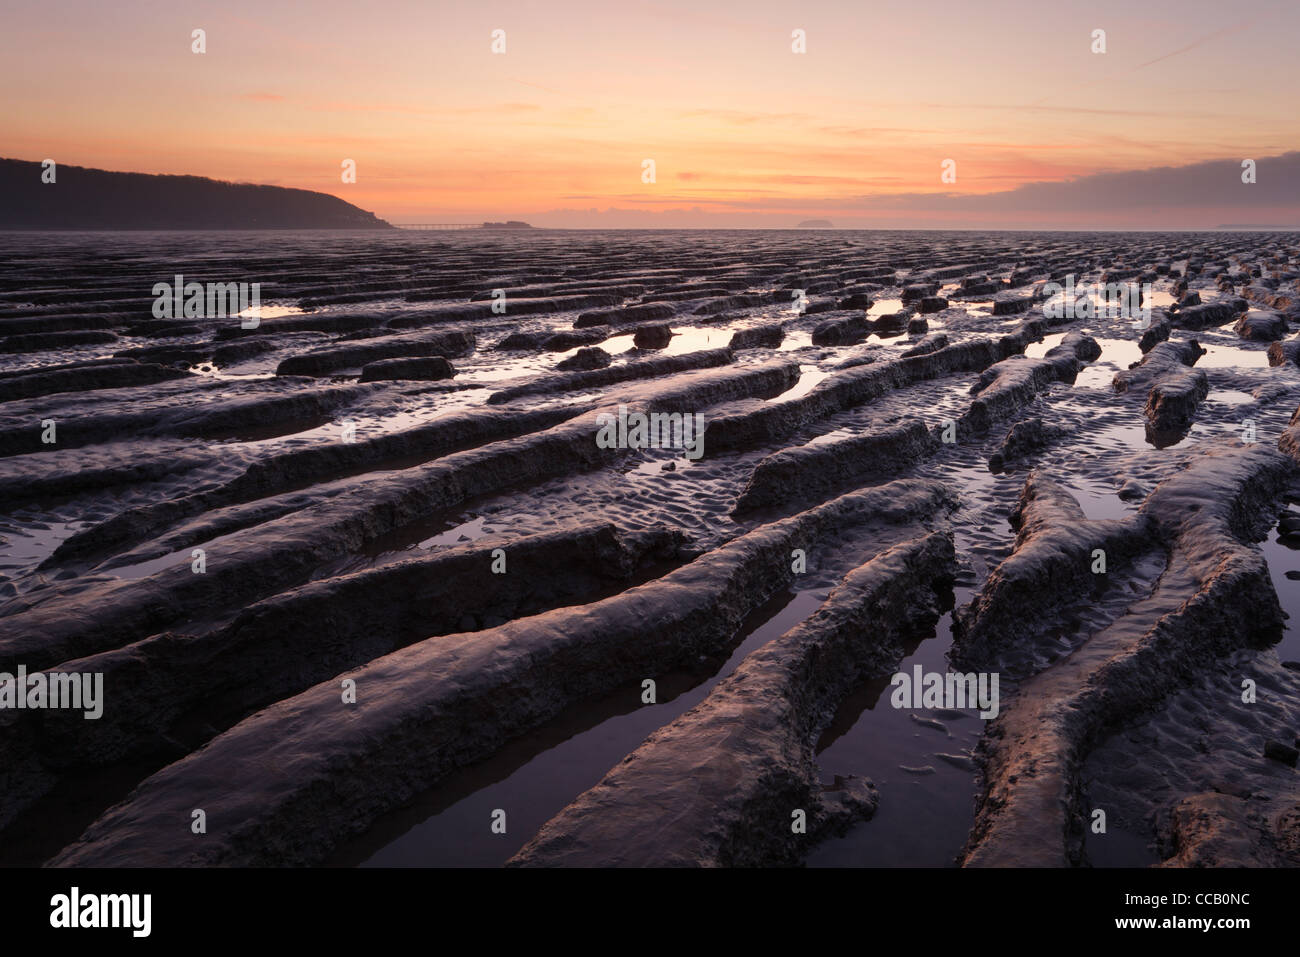 Mudflats at Sand Bay with Birnbeck Pier in the Distance. Weston-super-Mare. Somerset. England. UK. - Stock Image